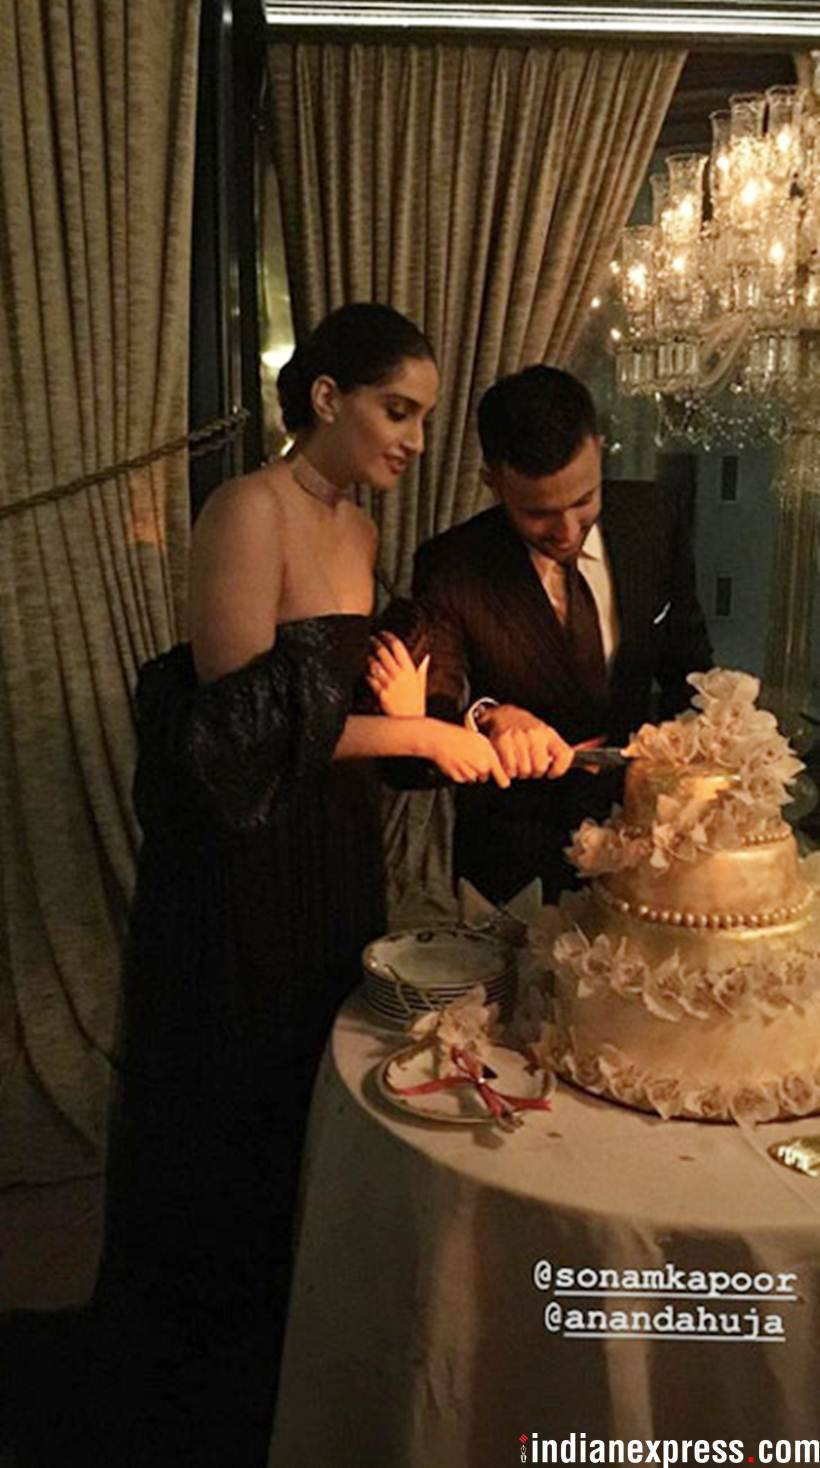 sonam and anand cutting cake